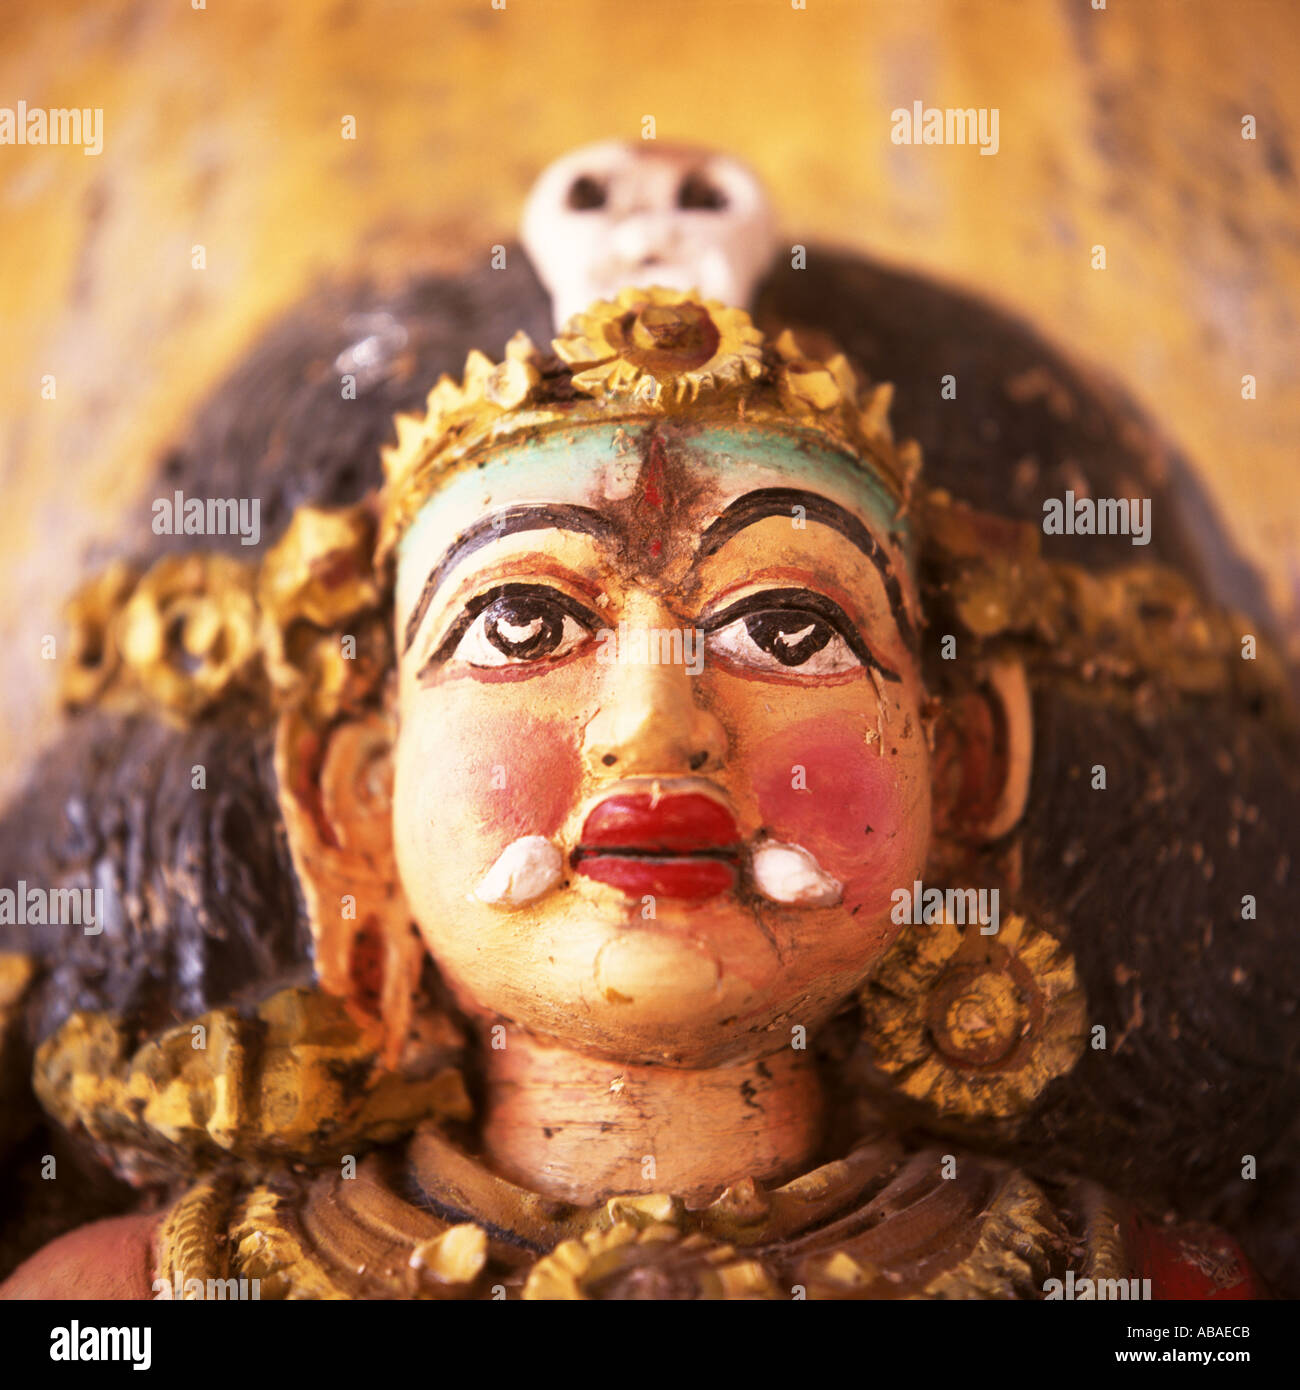 Indian doll - Stock Image